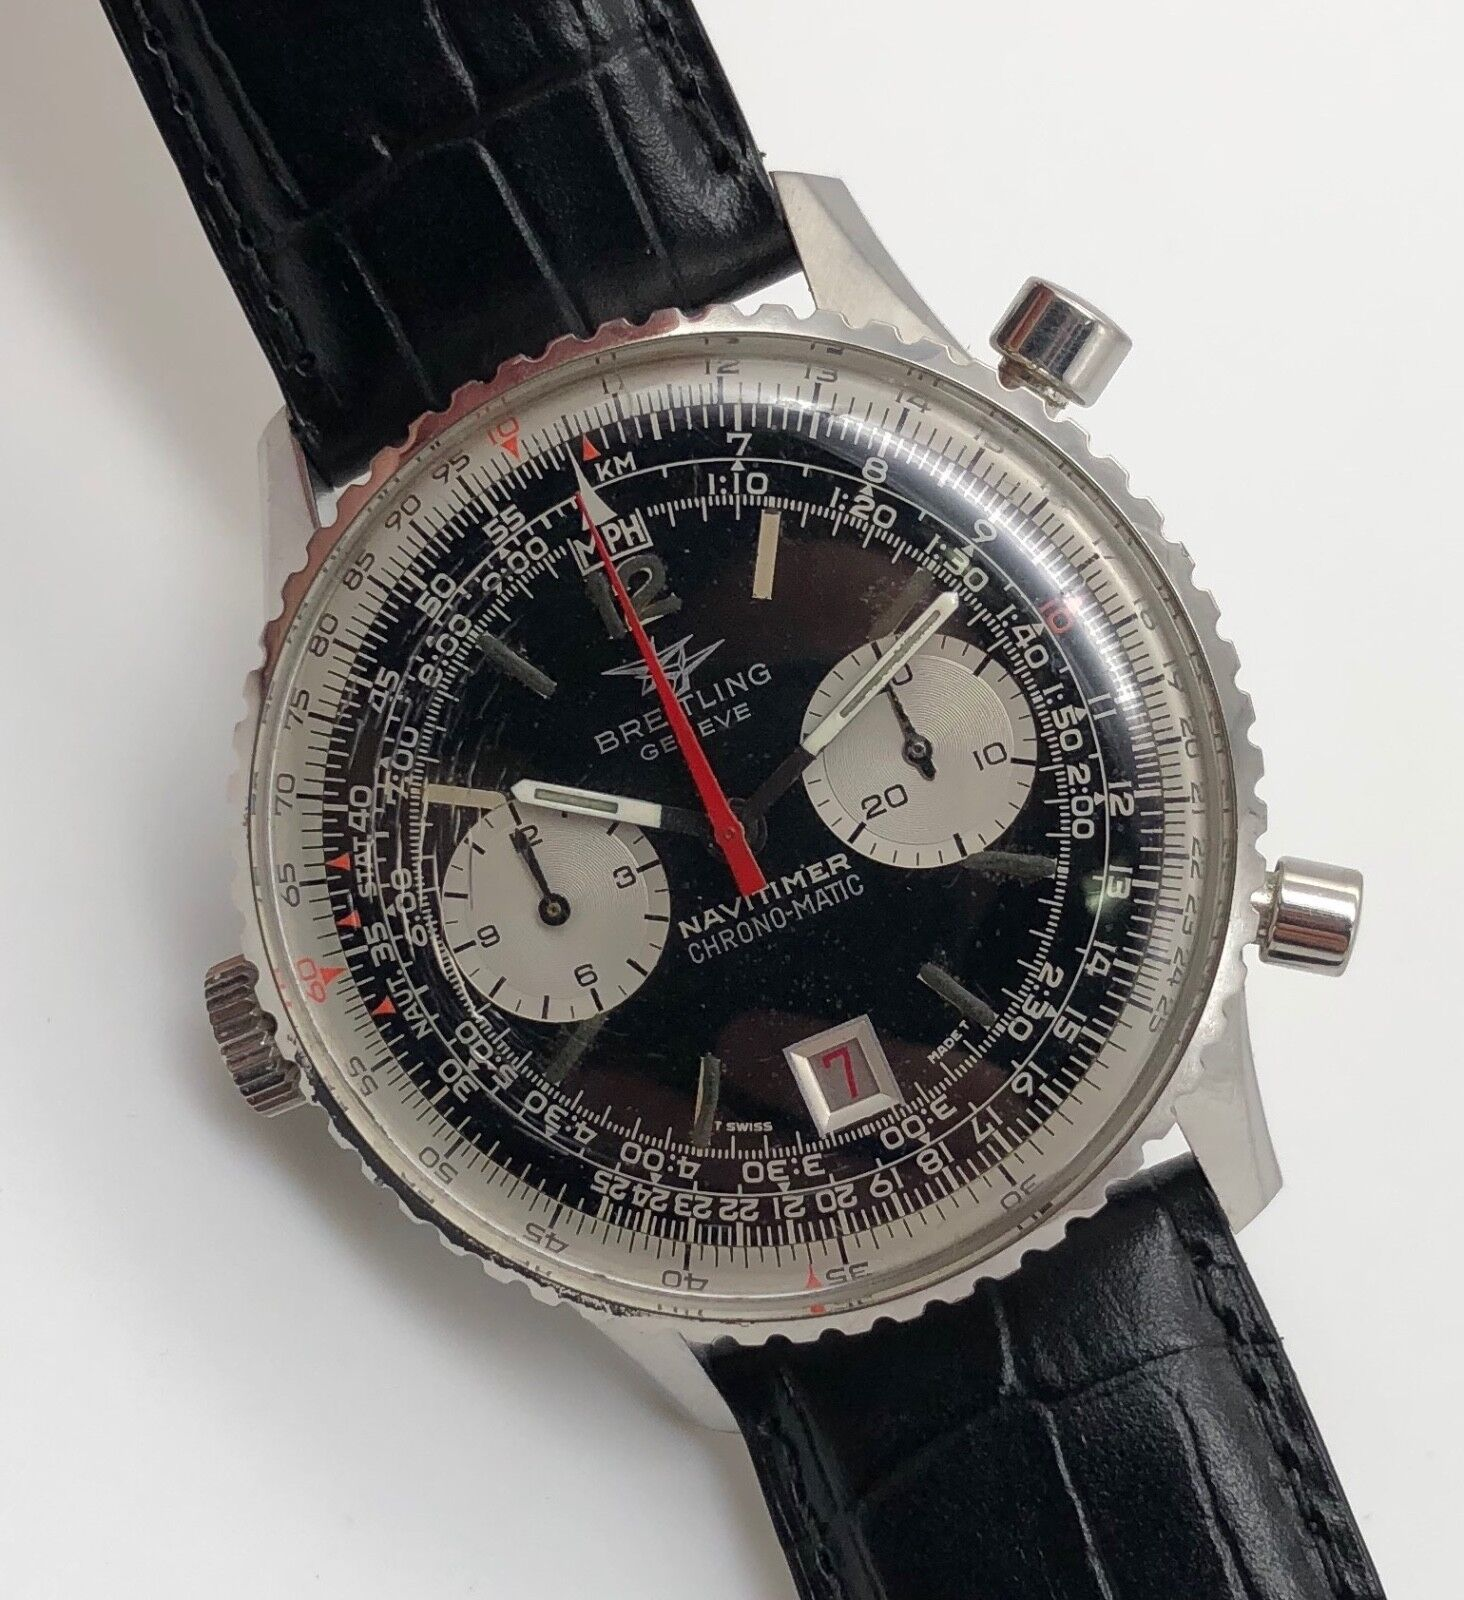 RARE VINTAGE BREITLING NAVITIMER CHRONO-MATIC CHRONOGRAPH REF. 8806 - watch picture 1